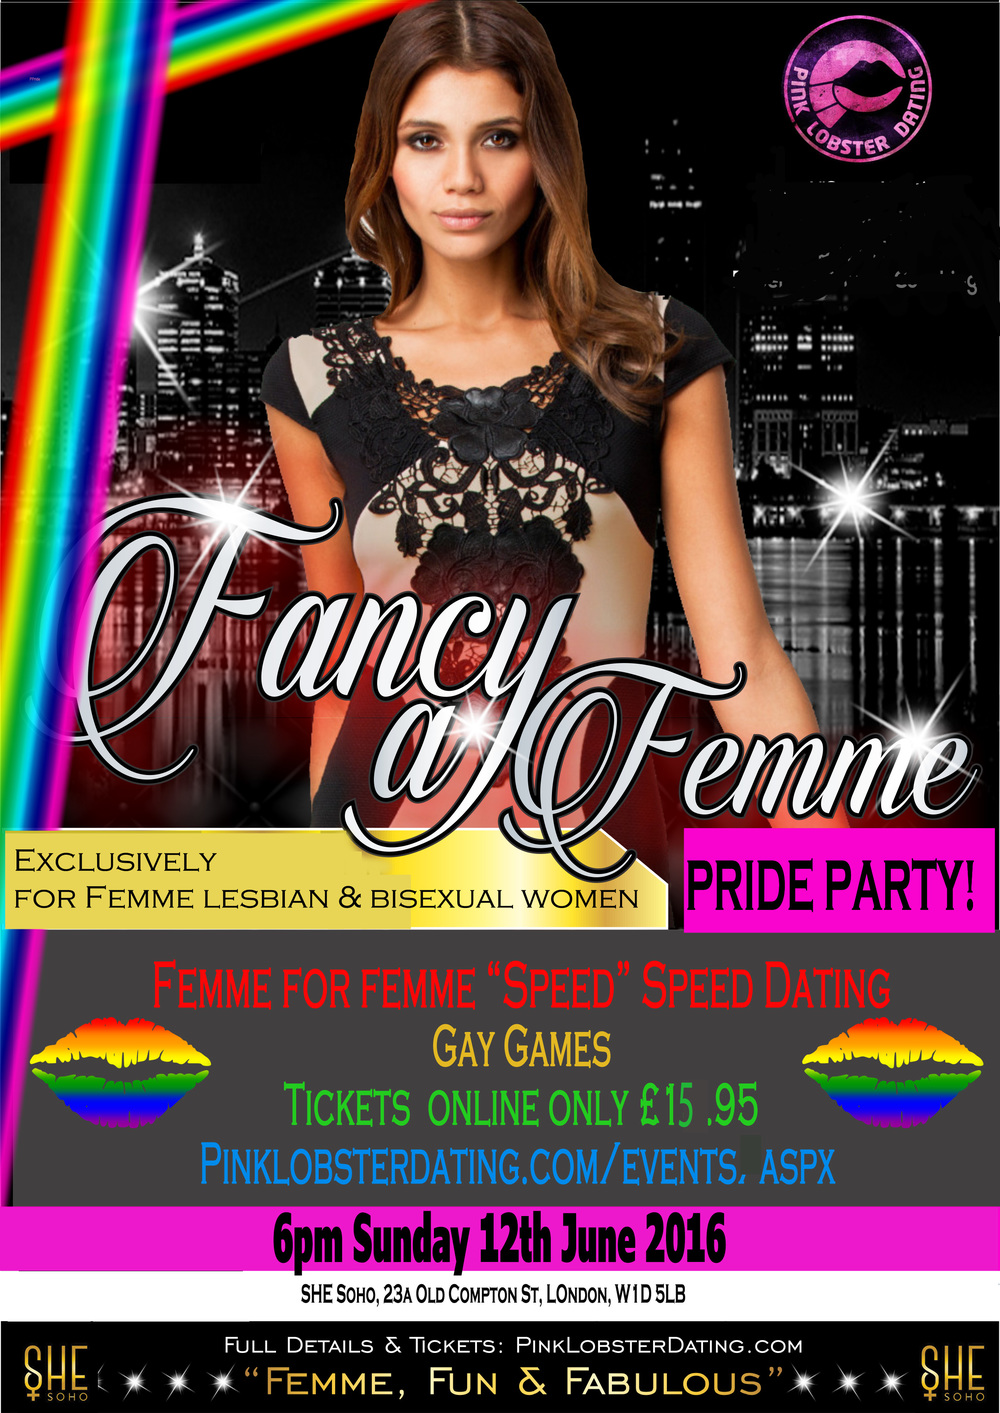 Fancy a femme London Pride party for lesbians and bisexuals